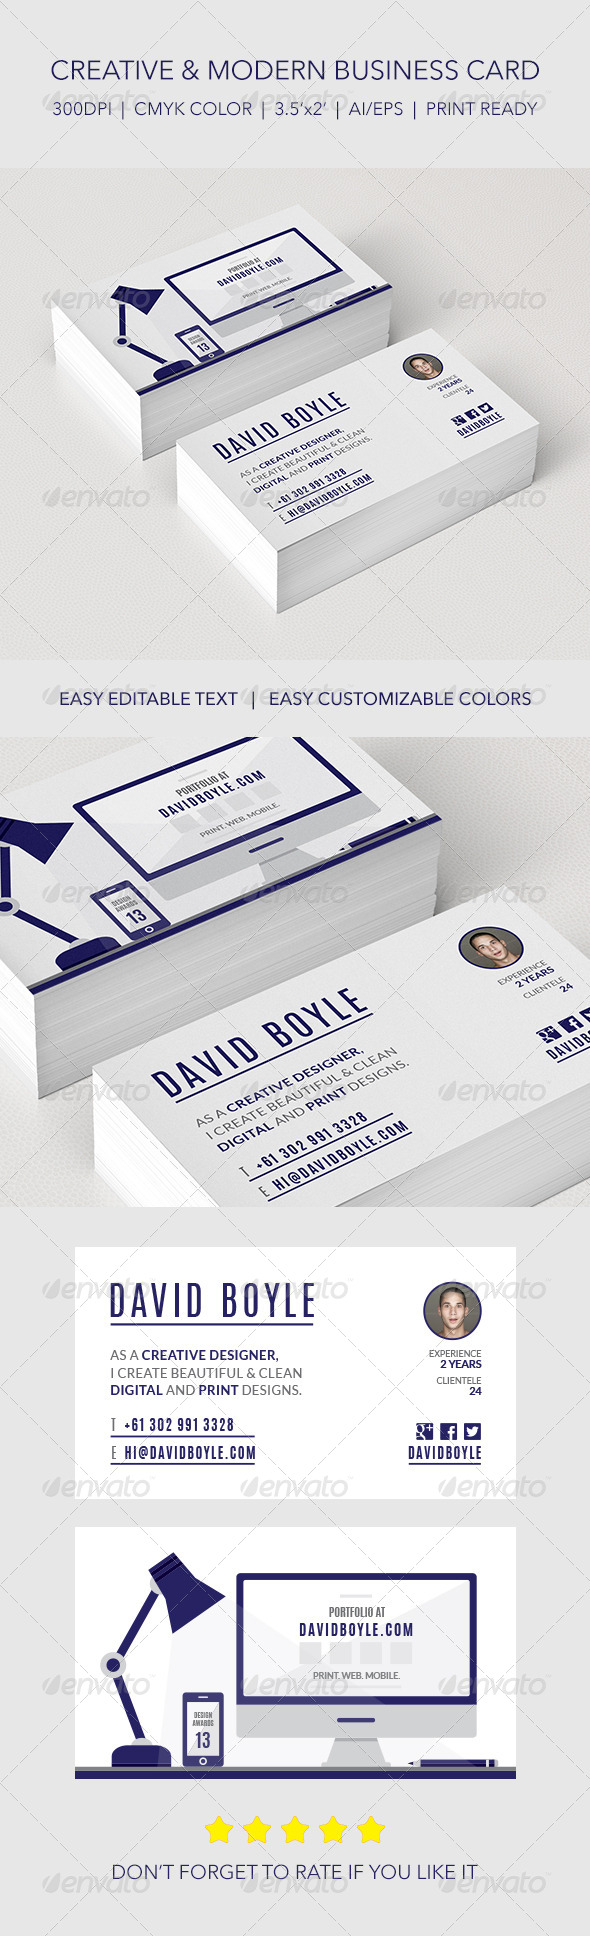 Modern & Minimally Illustrated Designer Card - Creative Business Cards